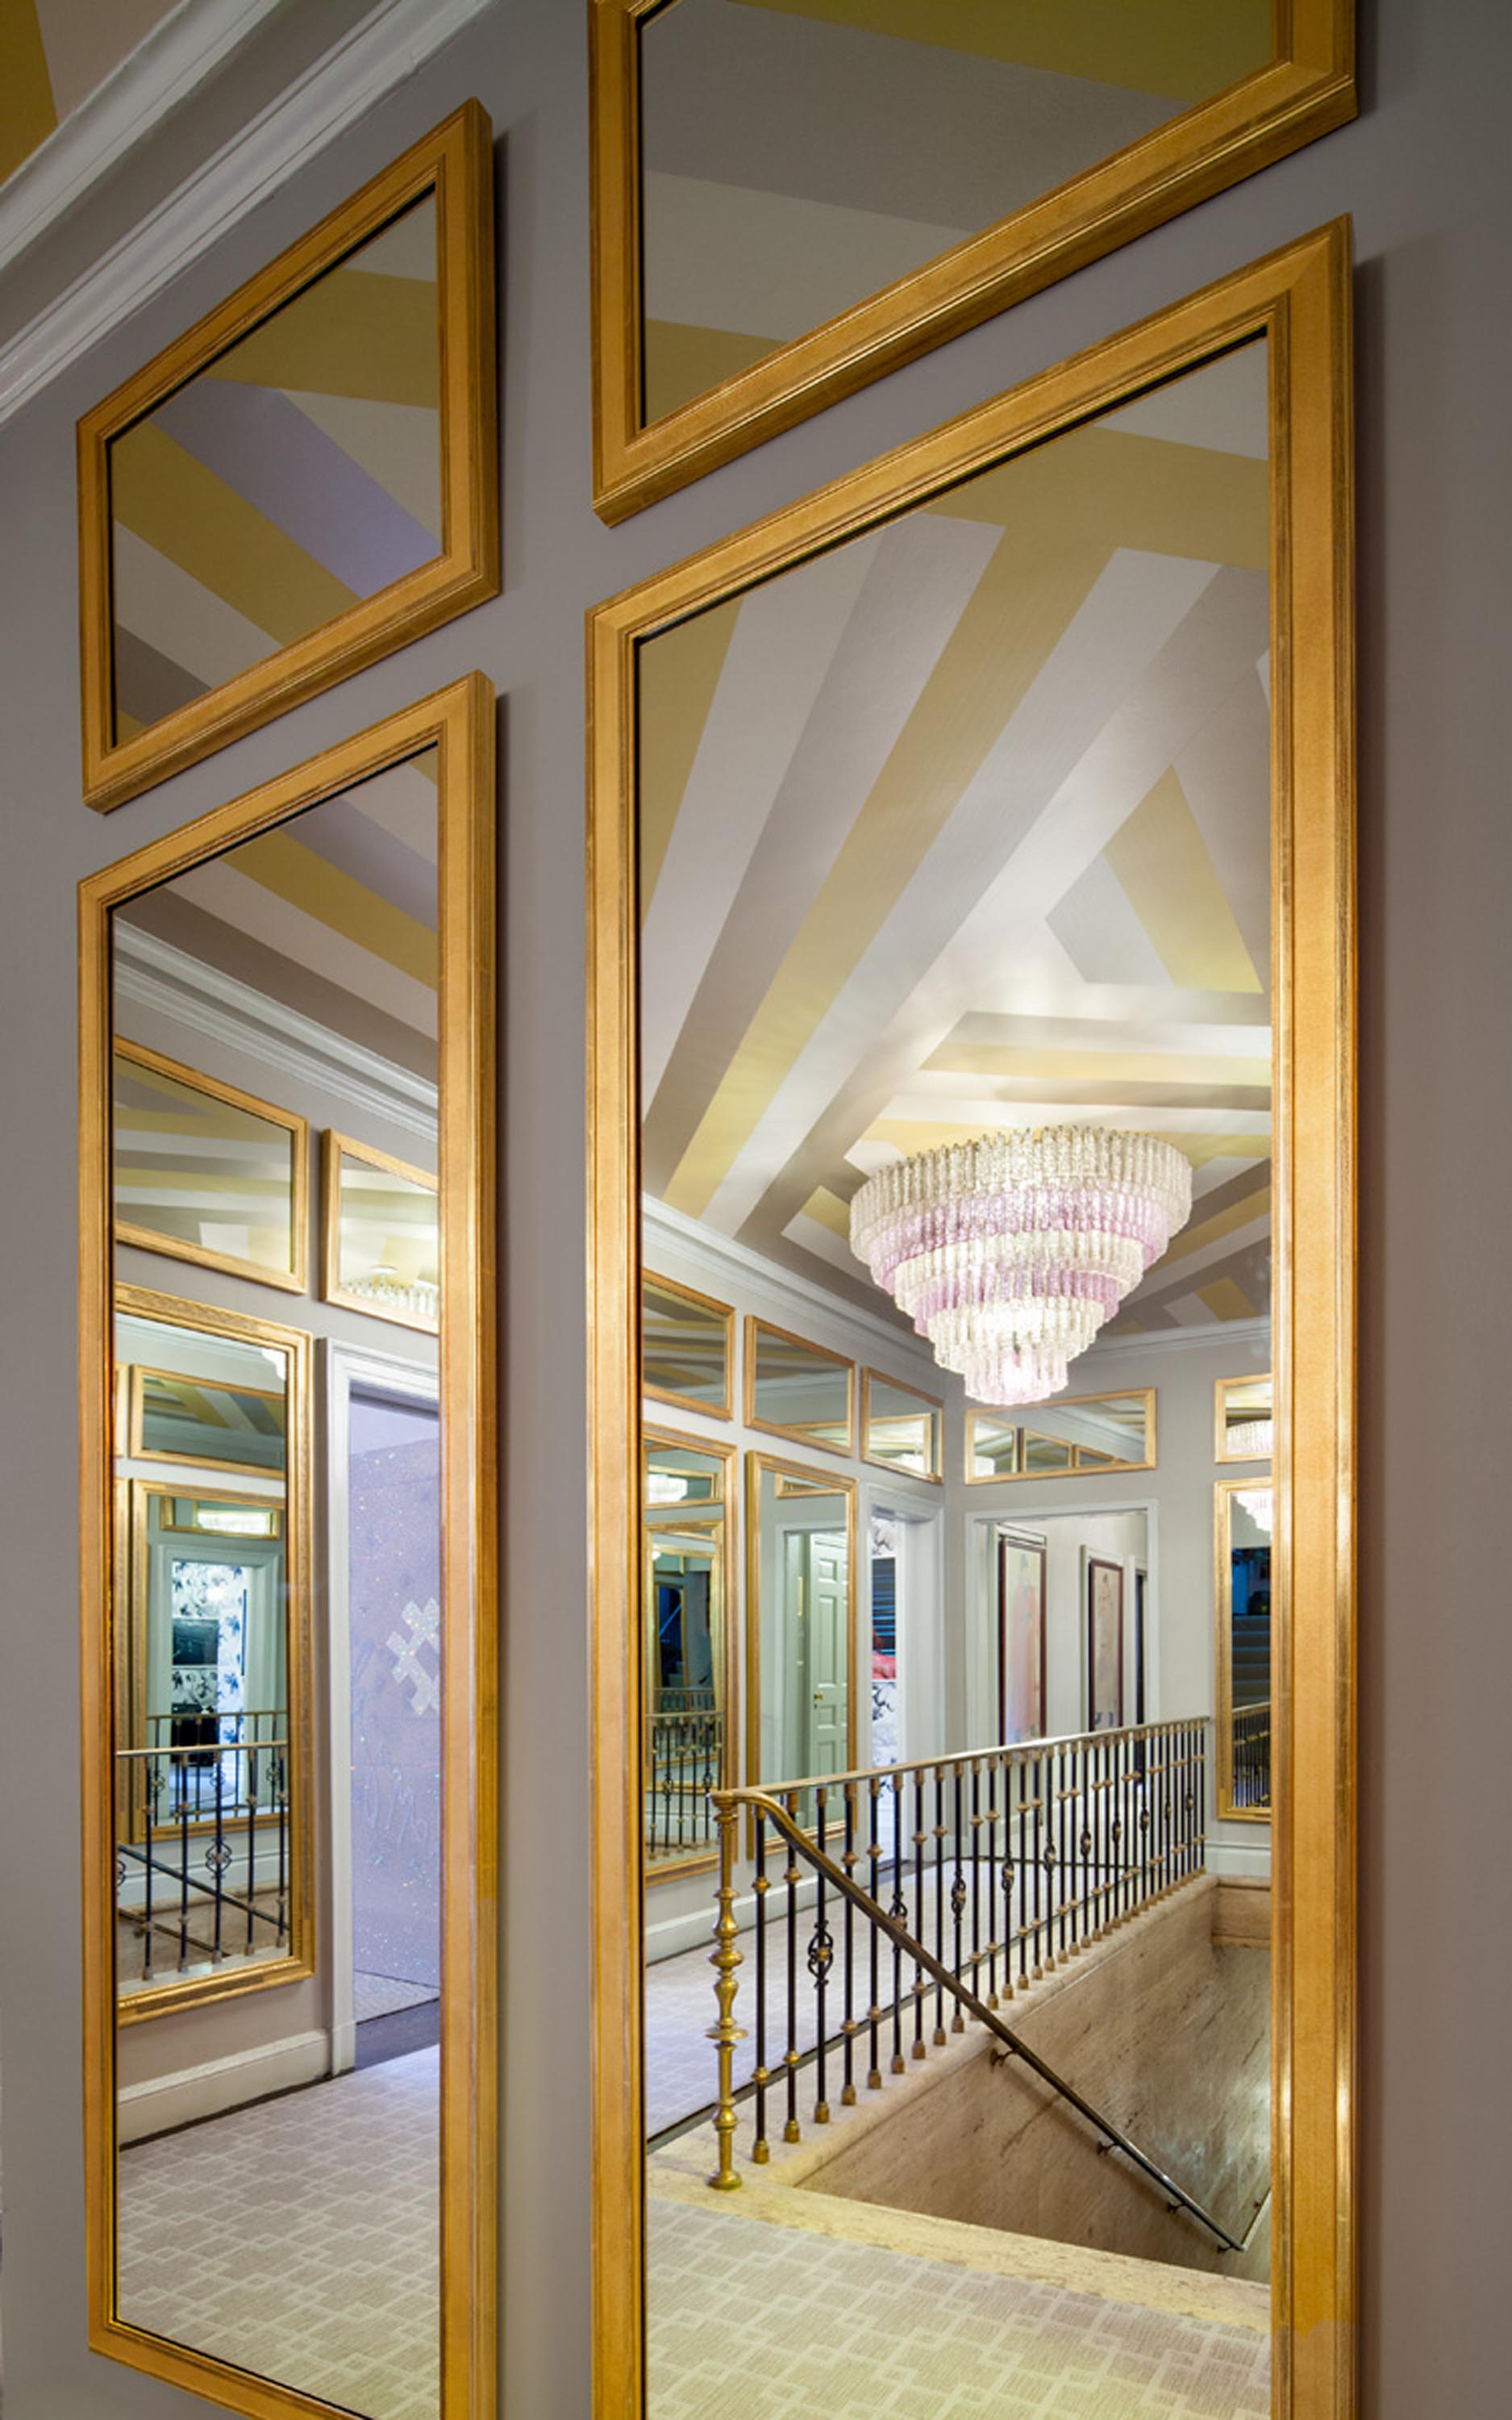 Rectangular gold framed mirrors hanging on wall